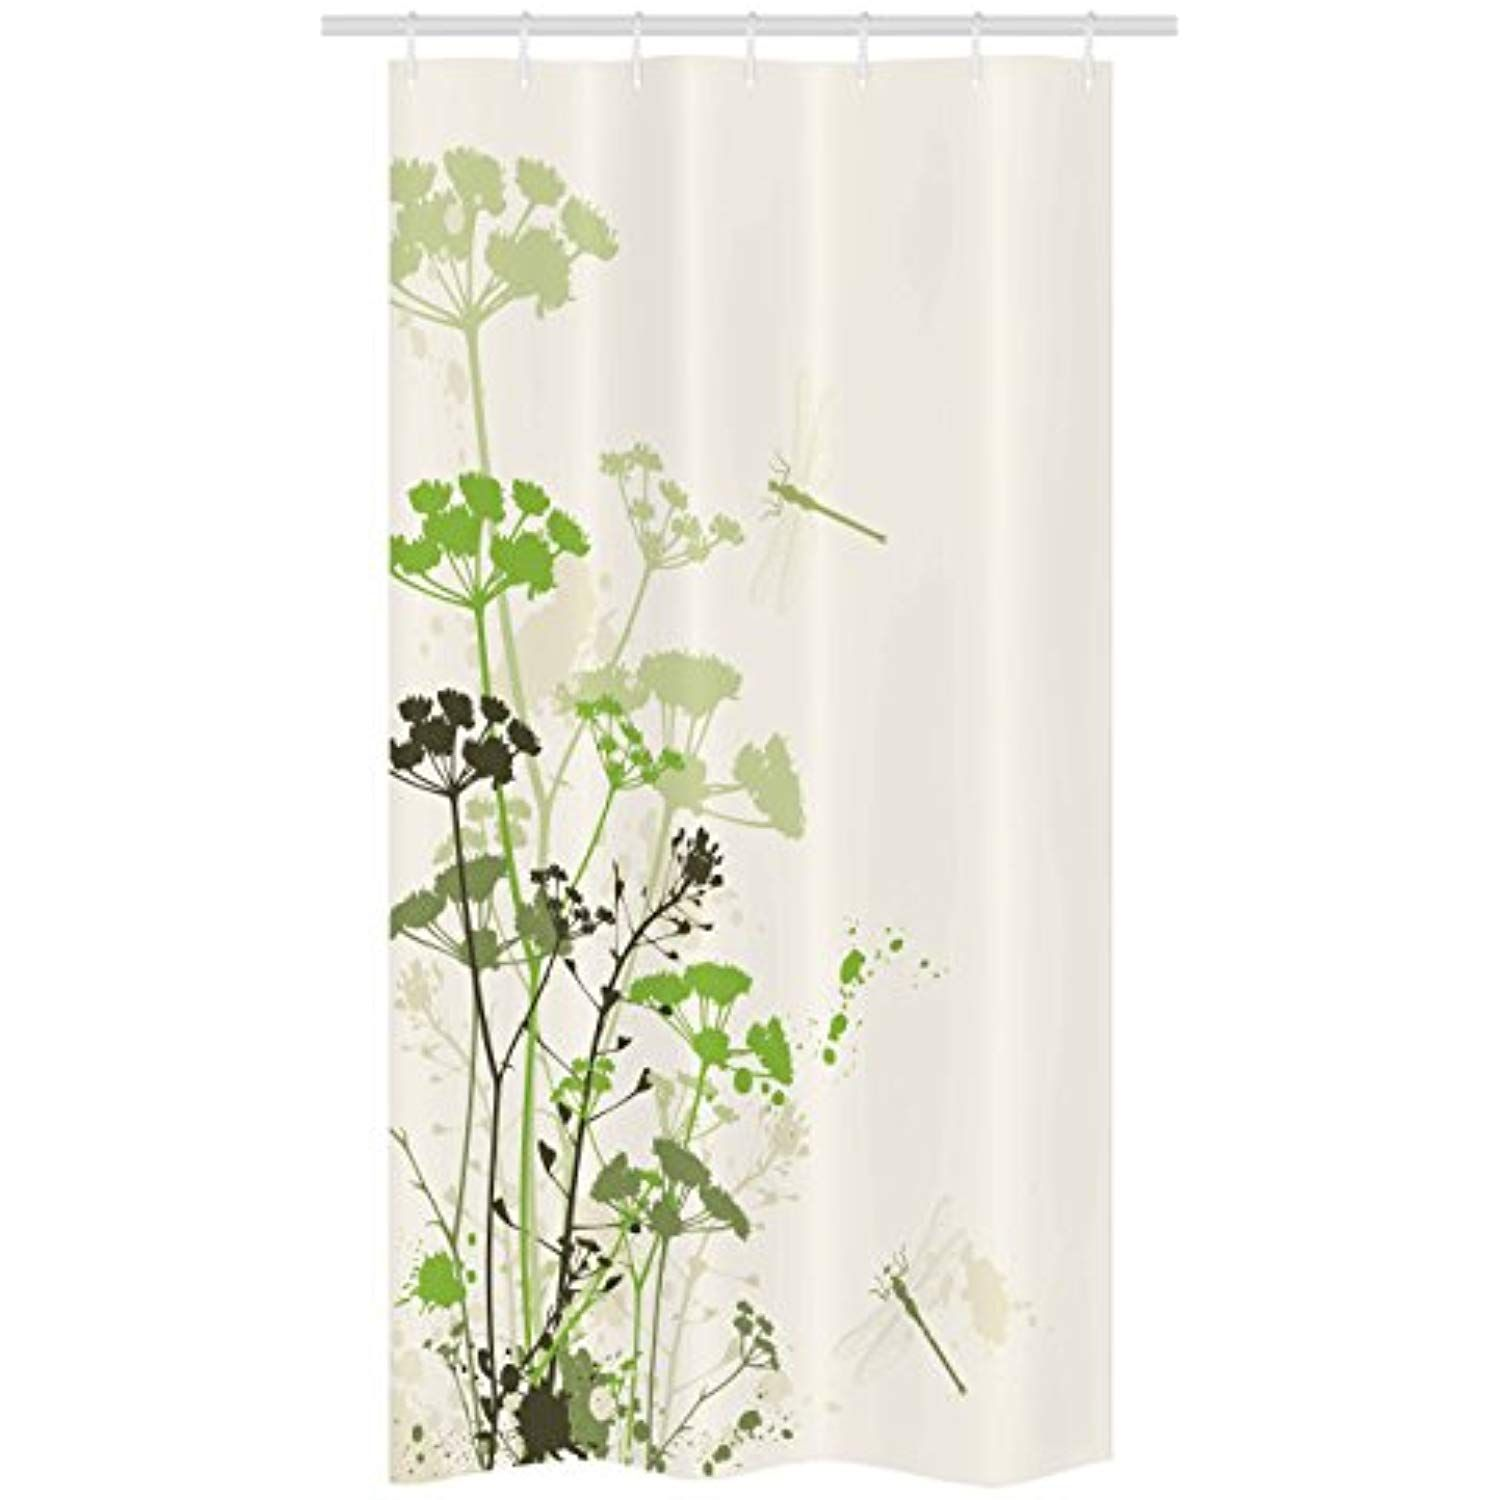 Dragonfly Stall Shower Curtain By Ambesonne Minimalist Foliage